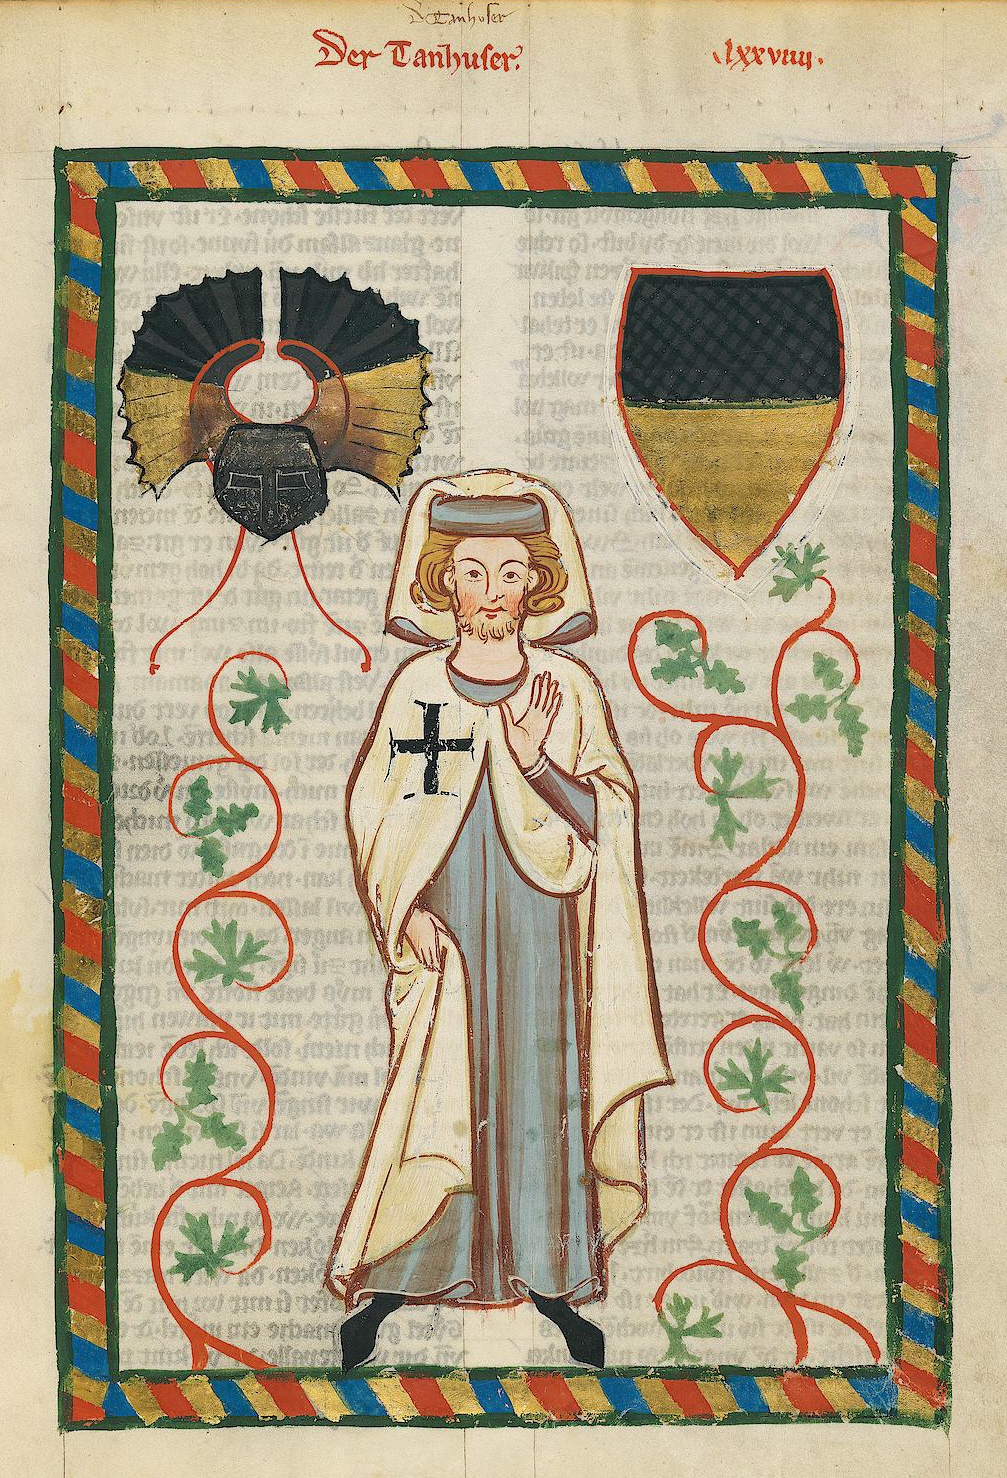 Codex_Manesse_Tannhäuser.jpg